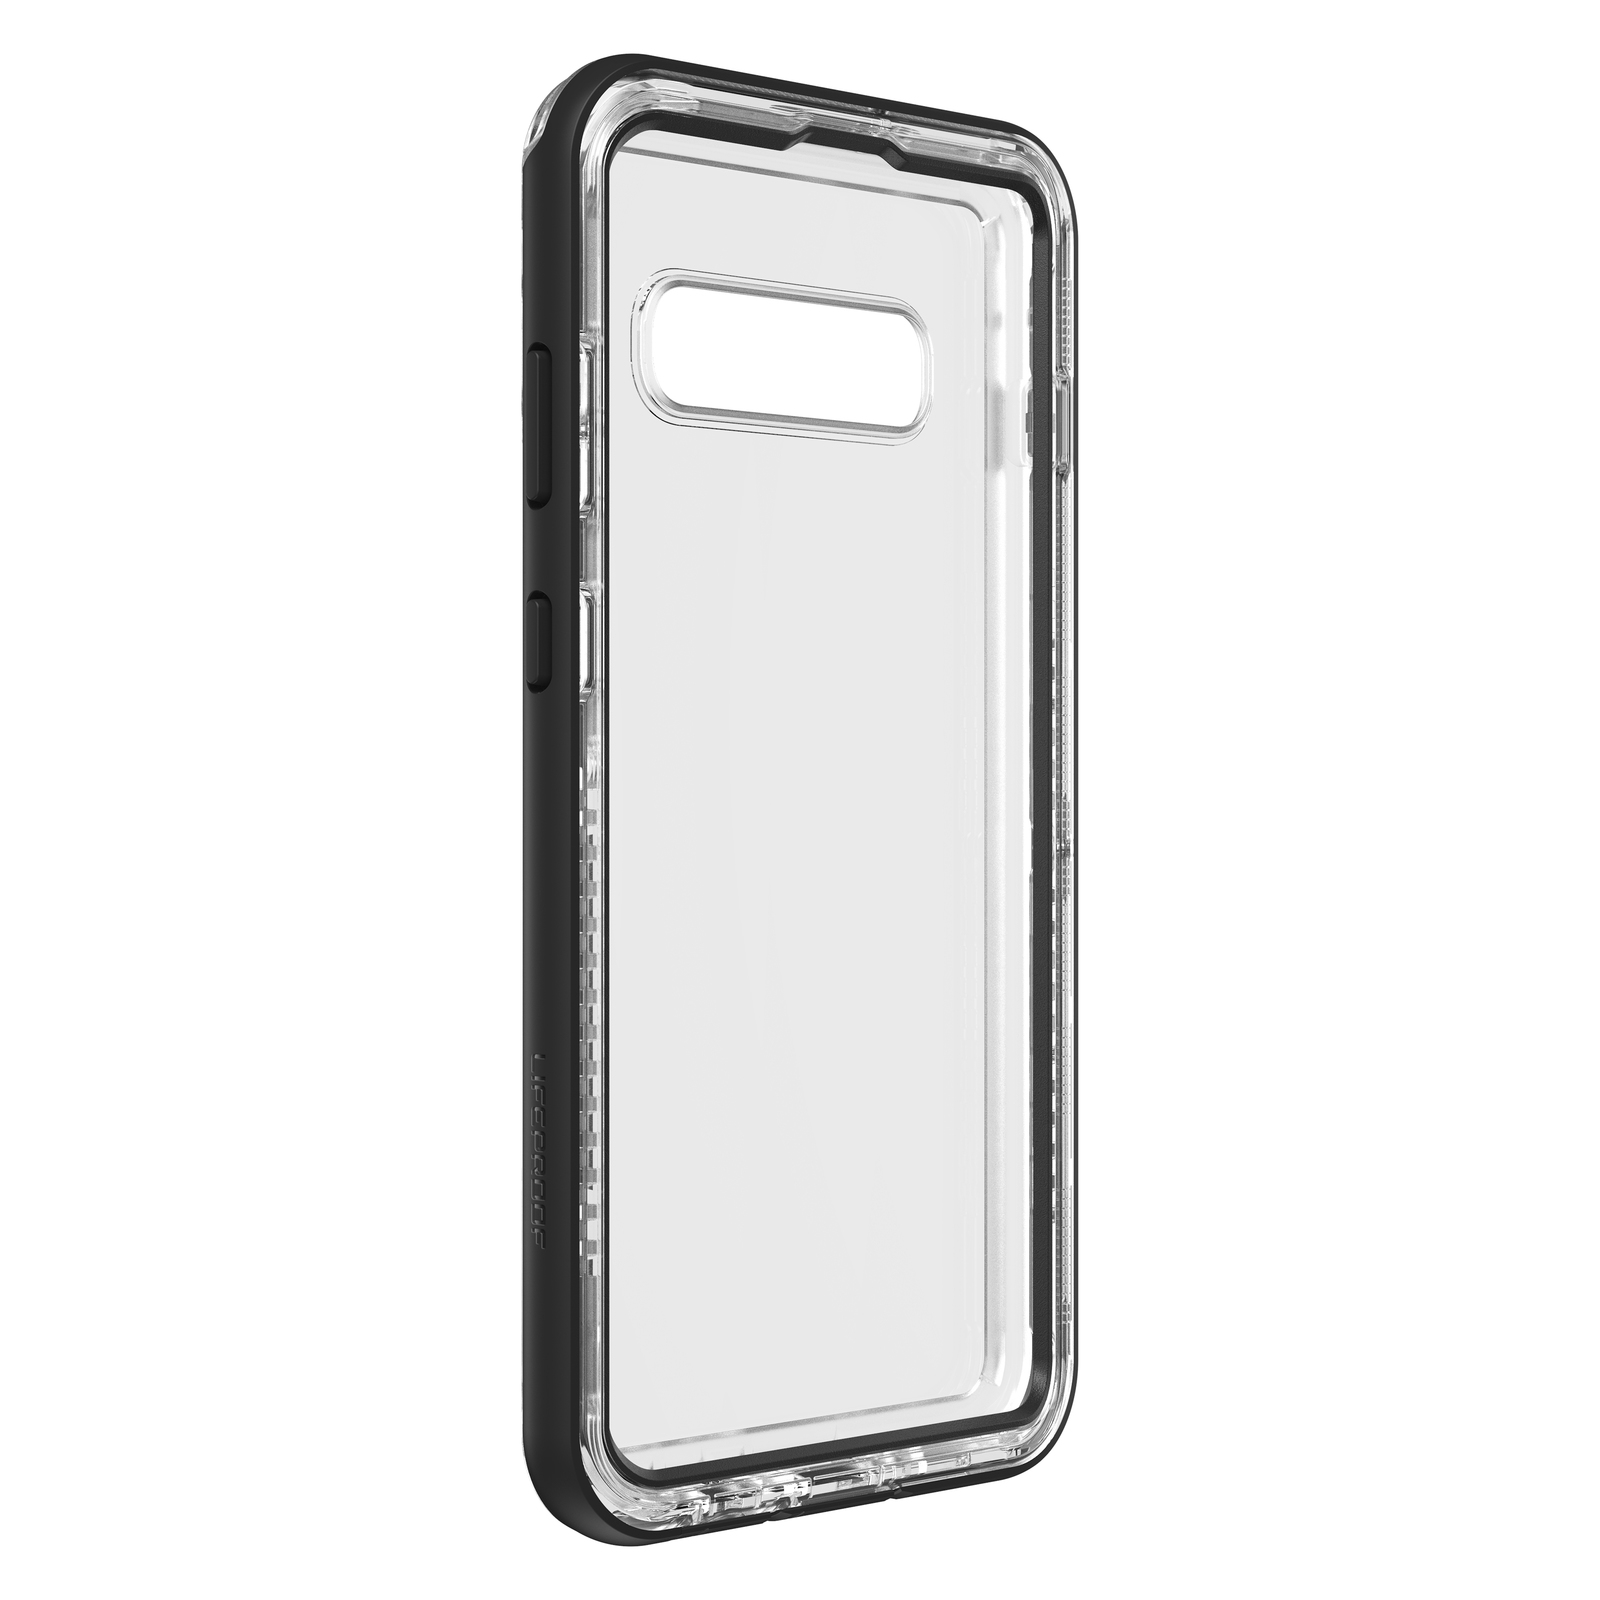 Lifeproof: Next for Galaxy S10+ - Black Crystal image